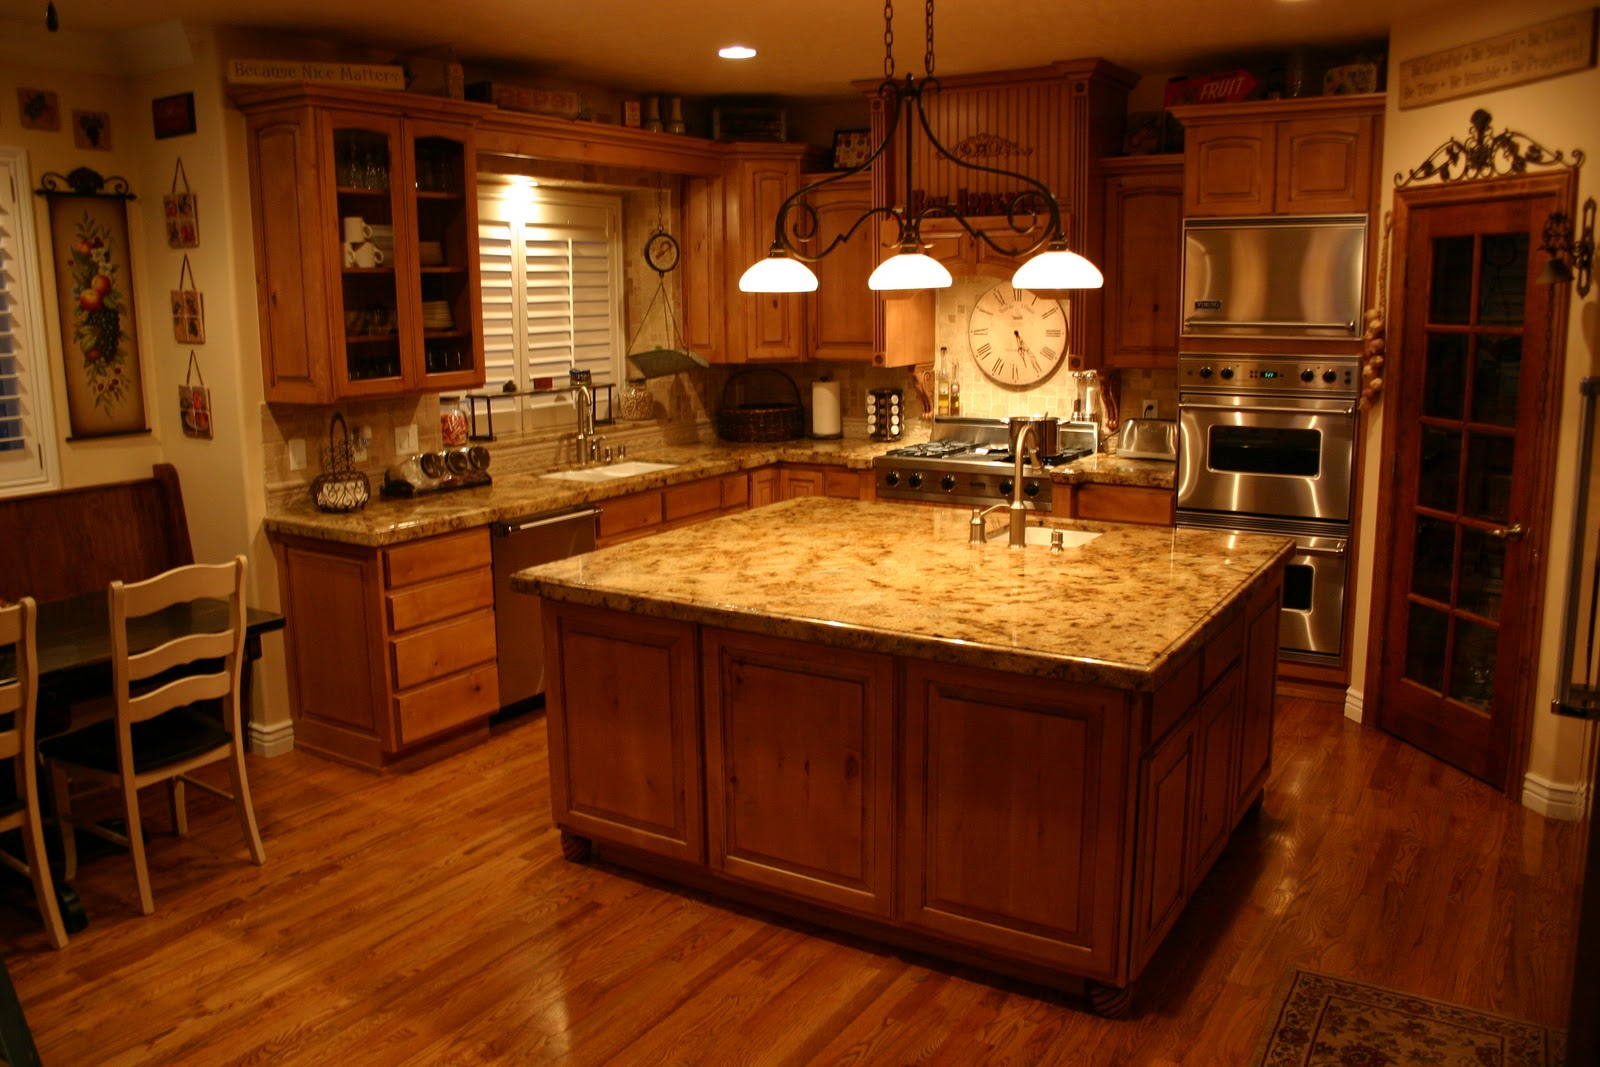 The granite gurus lapidus granite kitchen - Granite kitchen countertops pictures ...